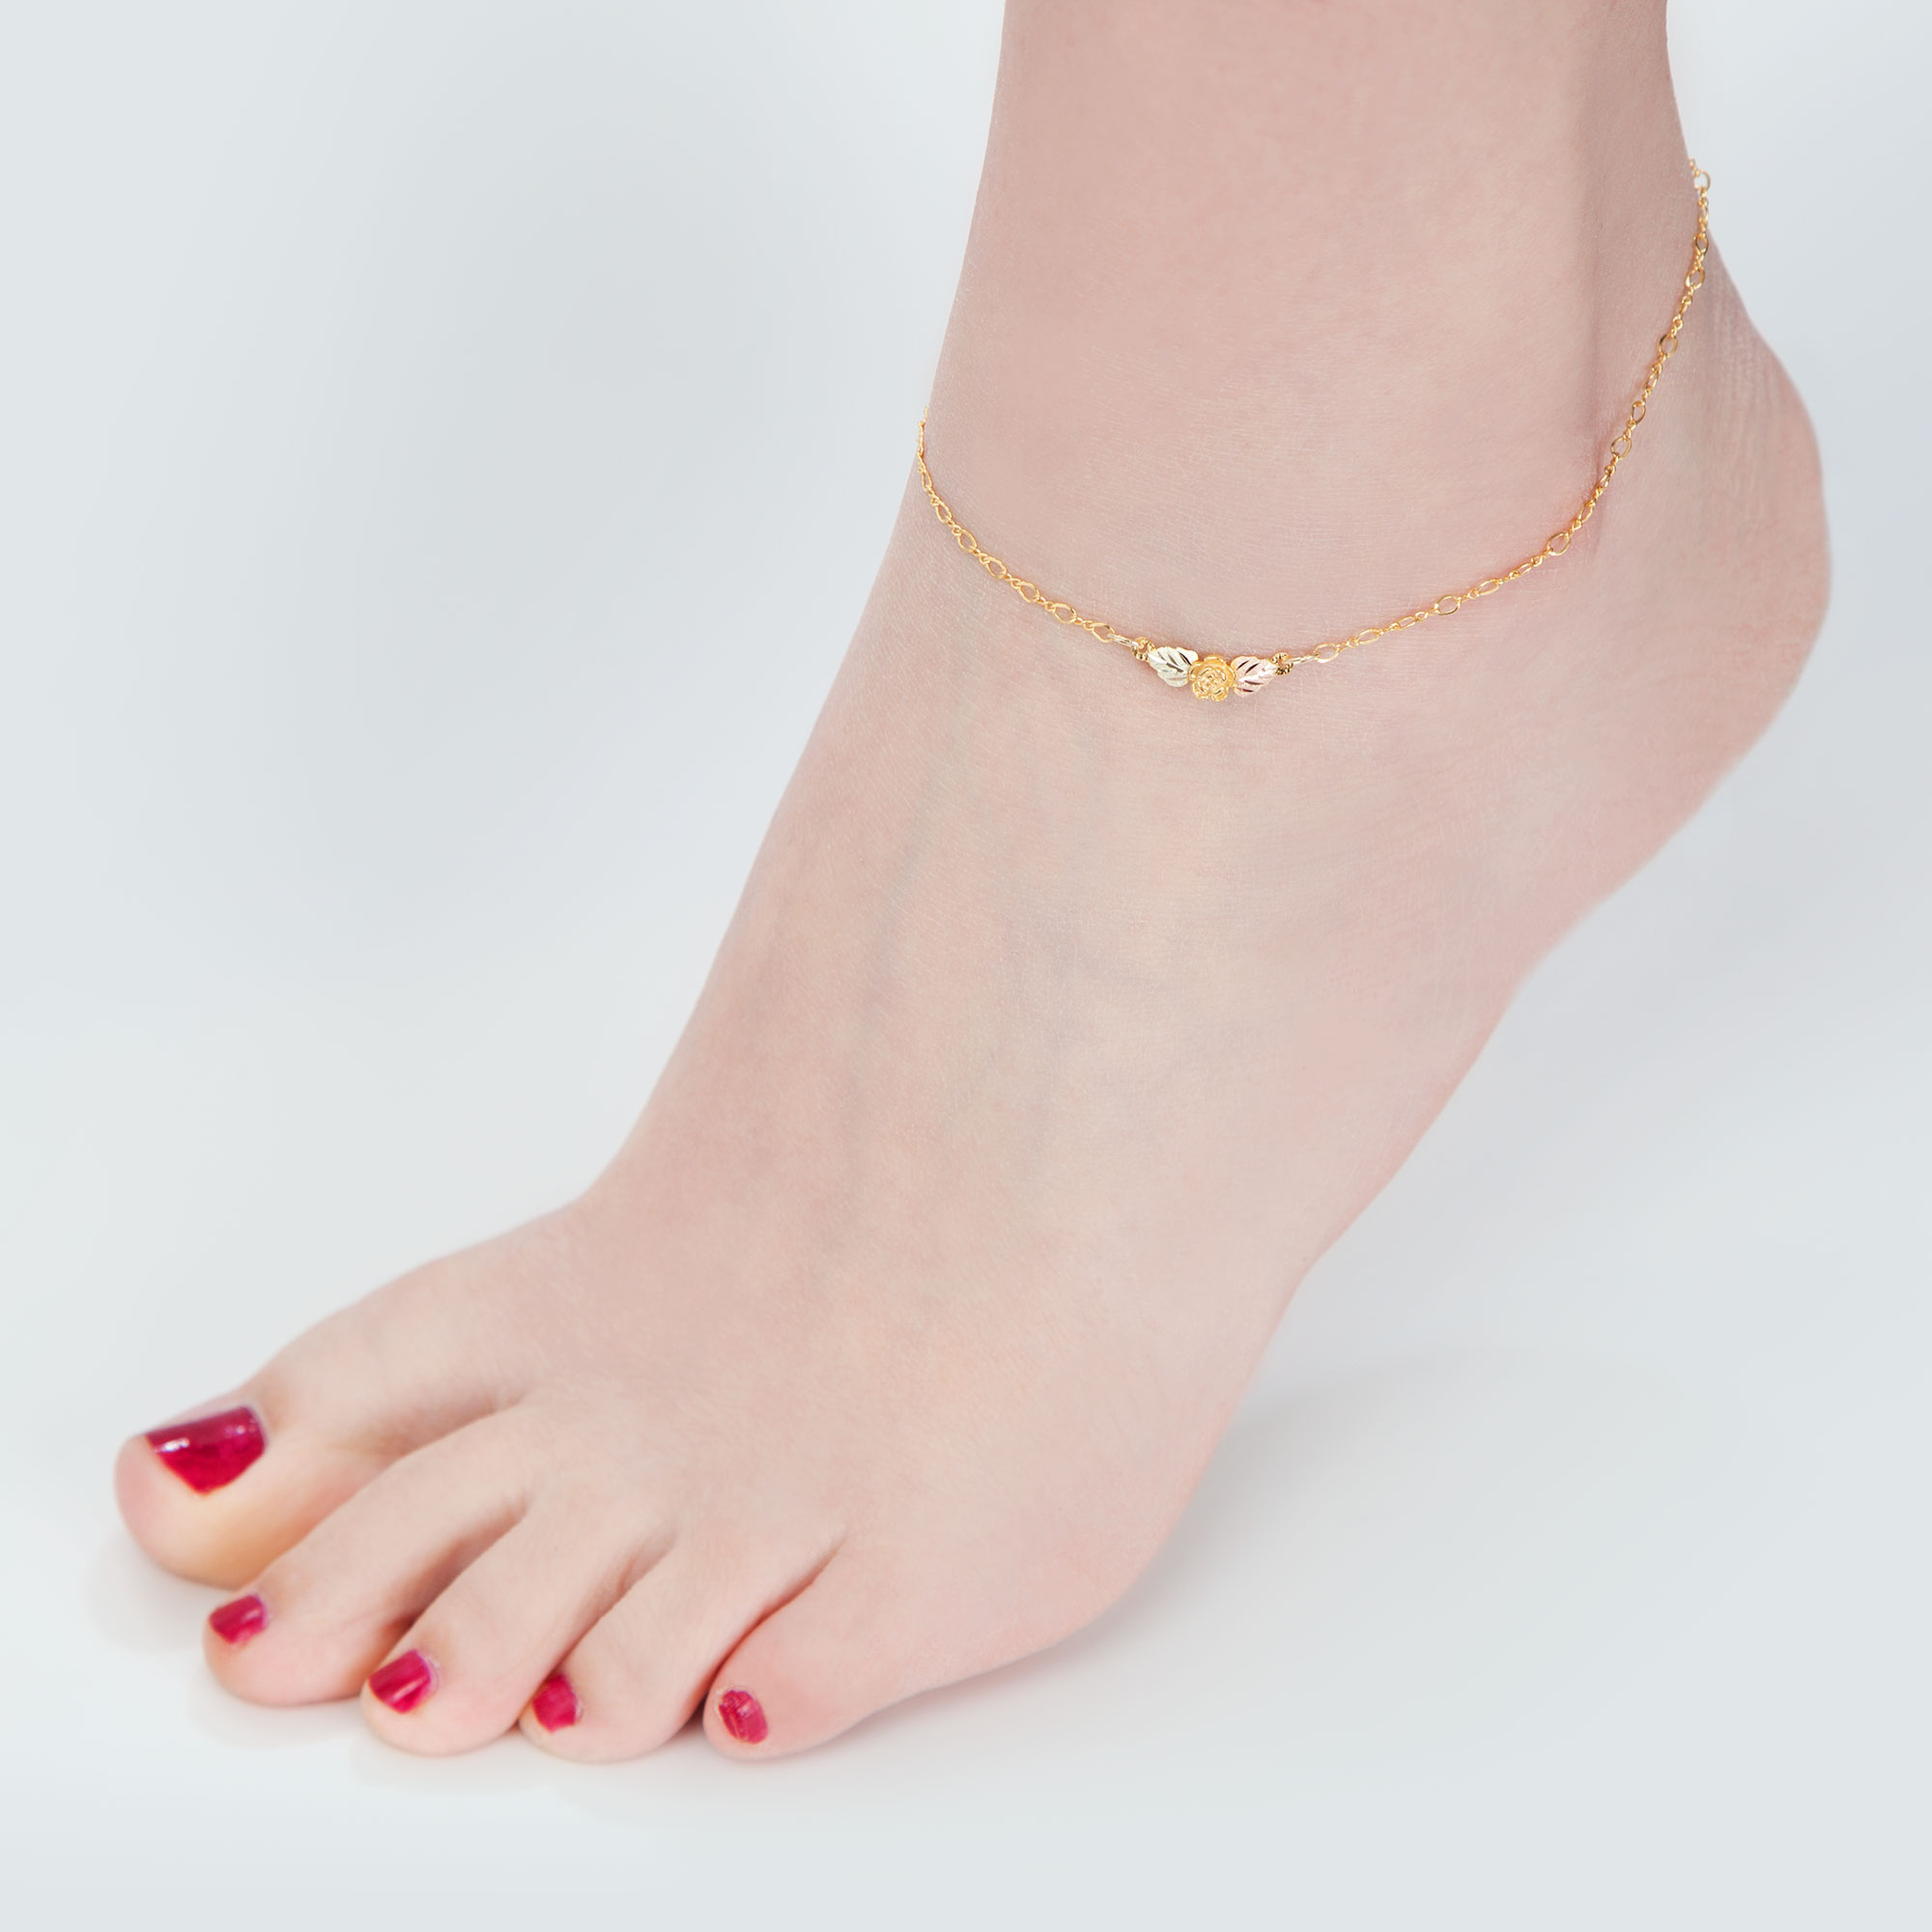 bali sandals women handmade barefoot anklets jewelry in foot gold for nikita anklet products